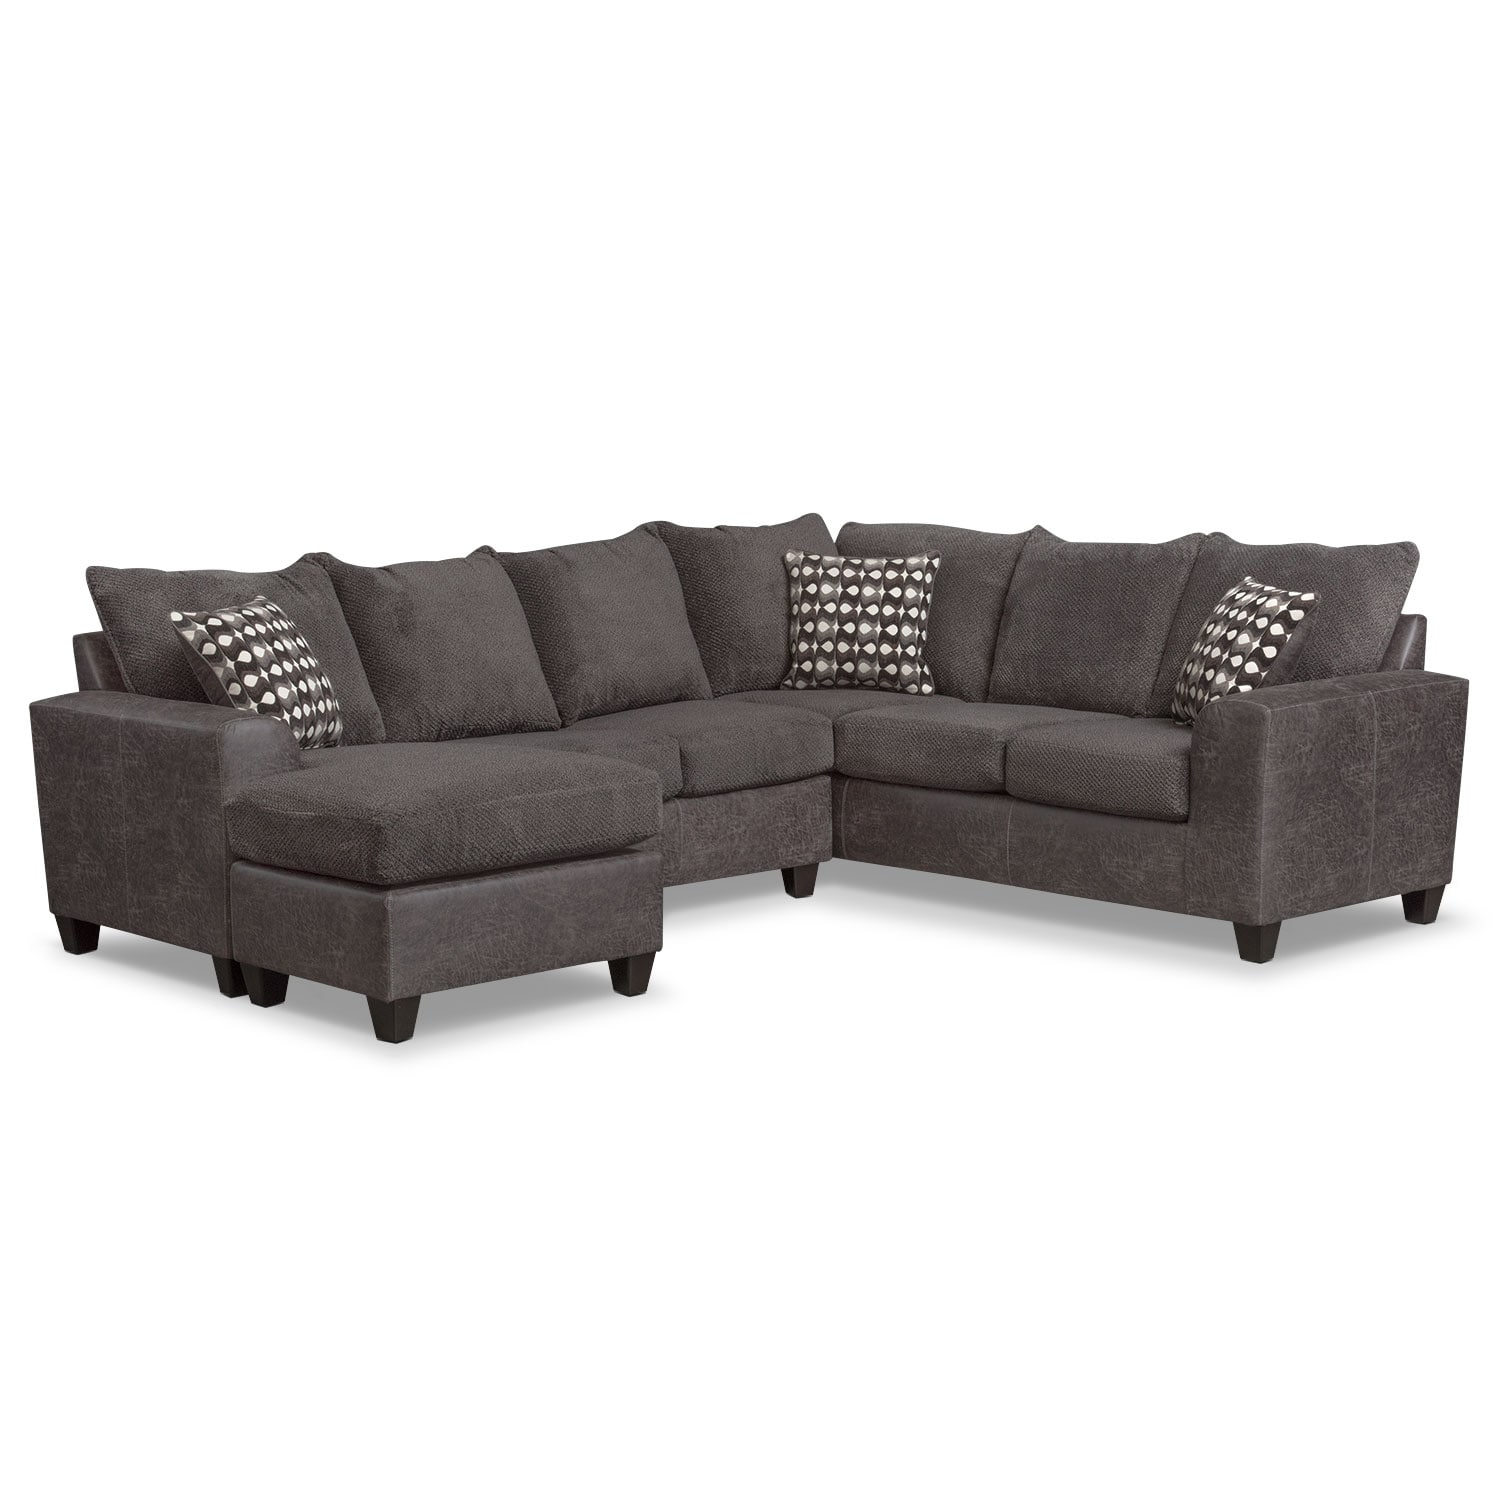 Brando 3 Piece Memory Foam Sleeper Sectional Smoke